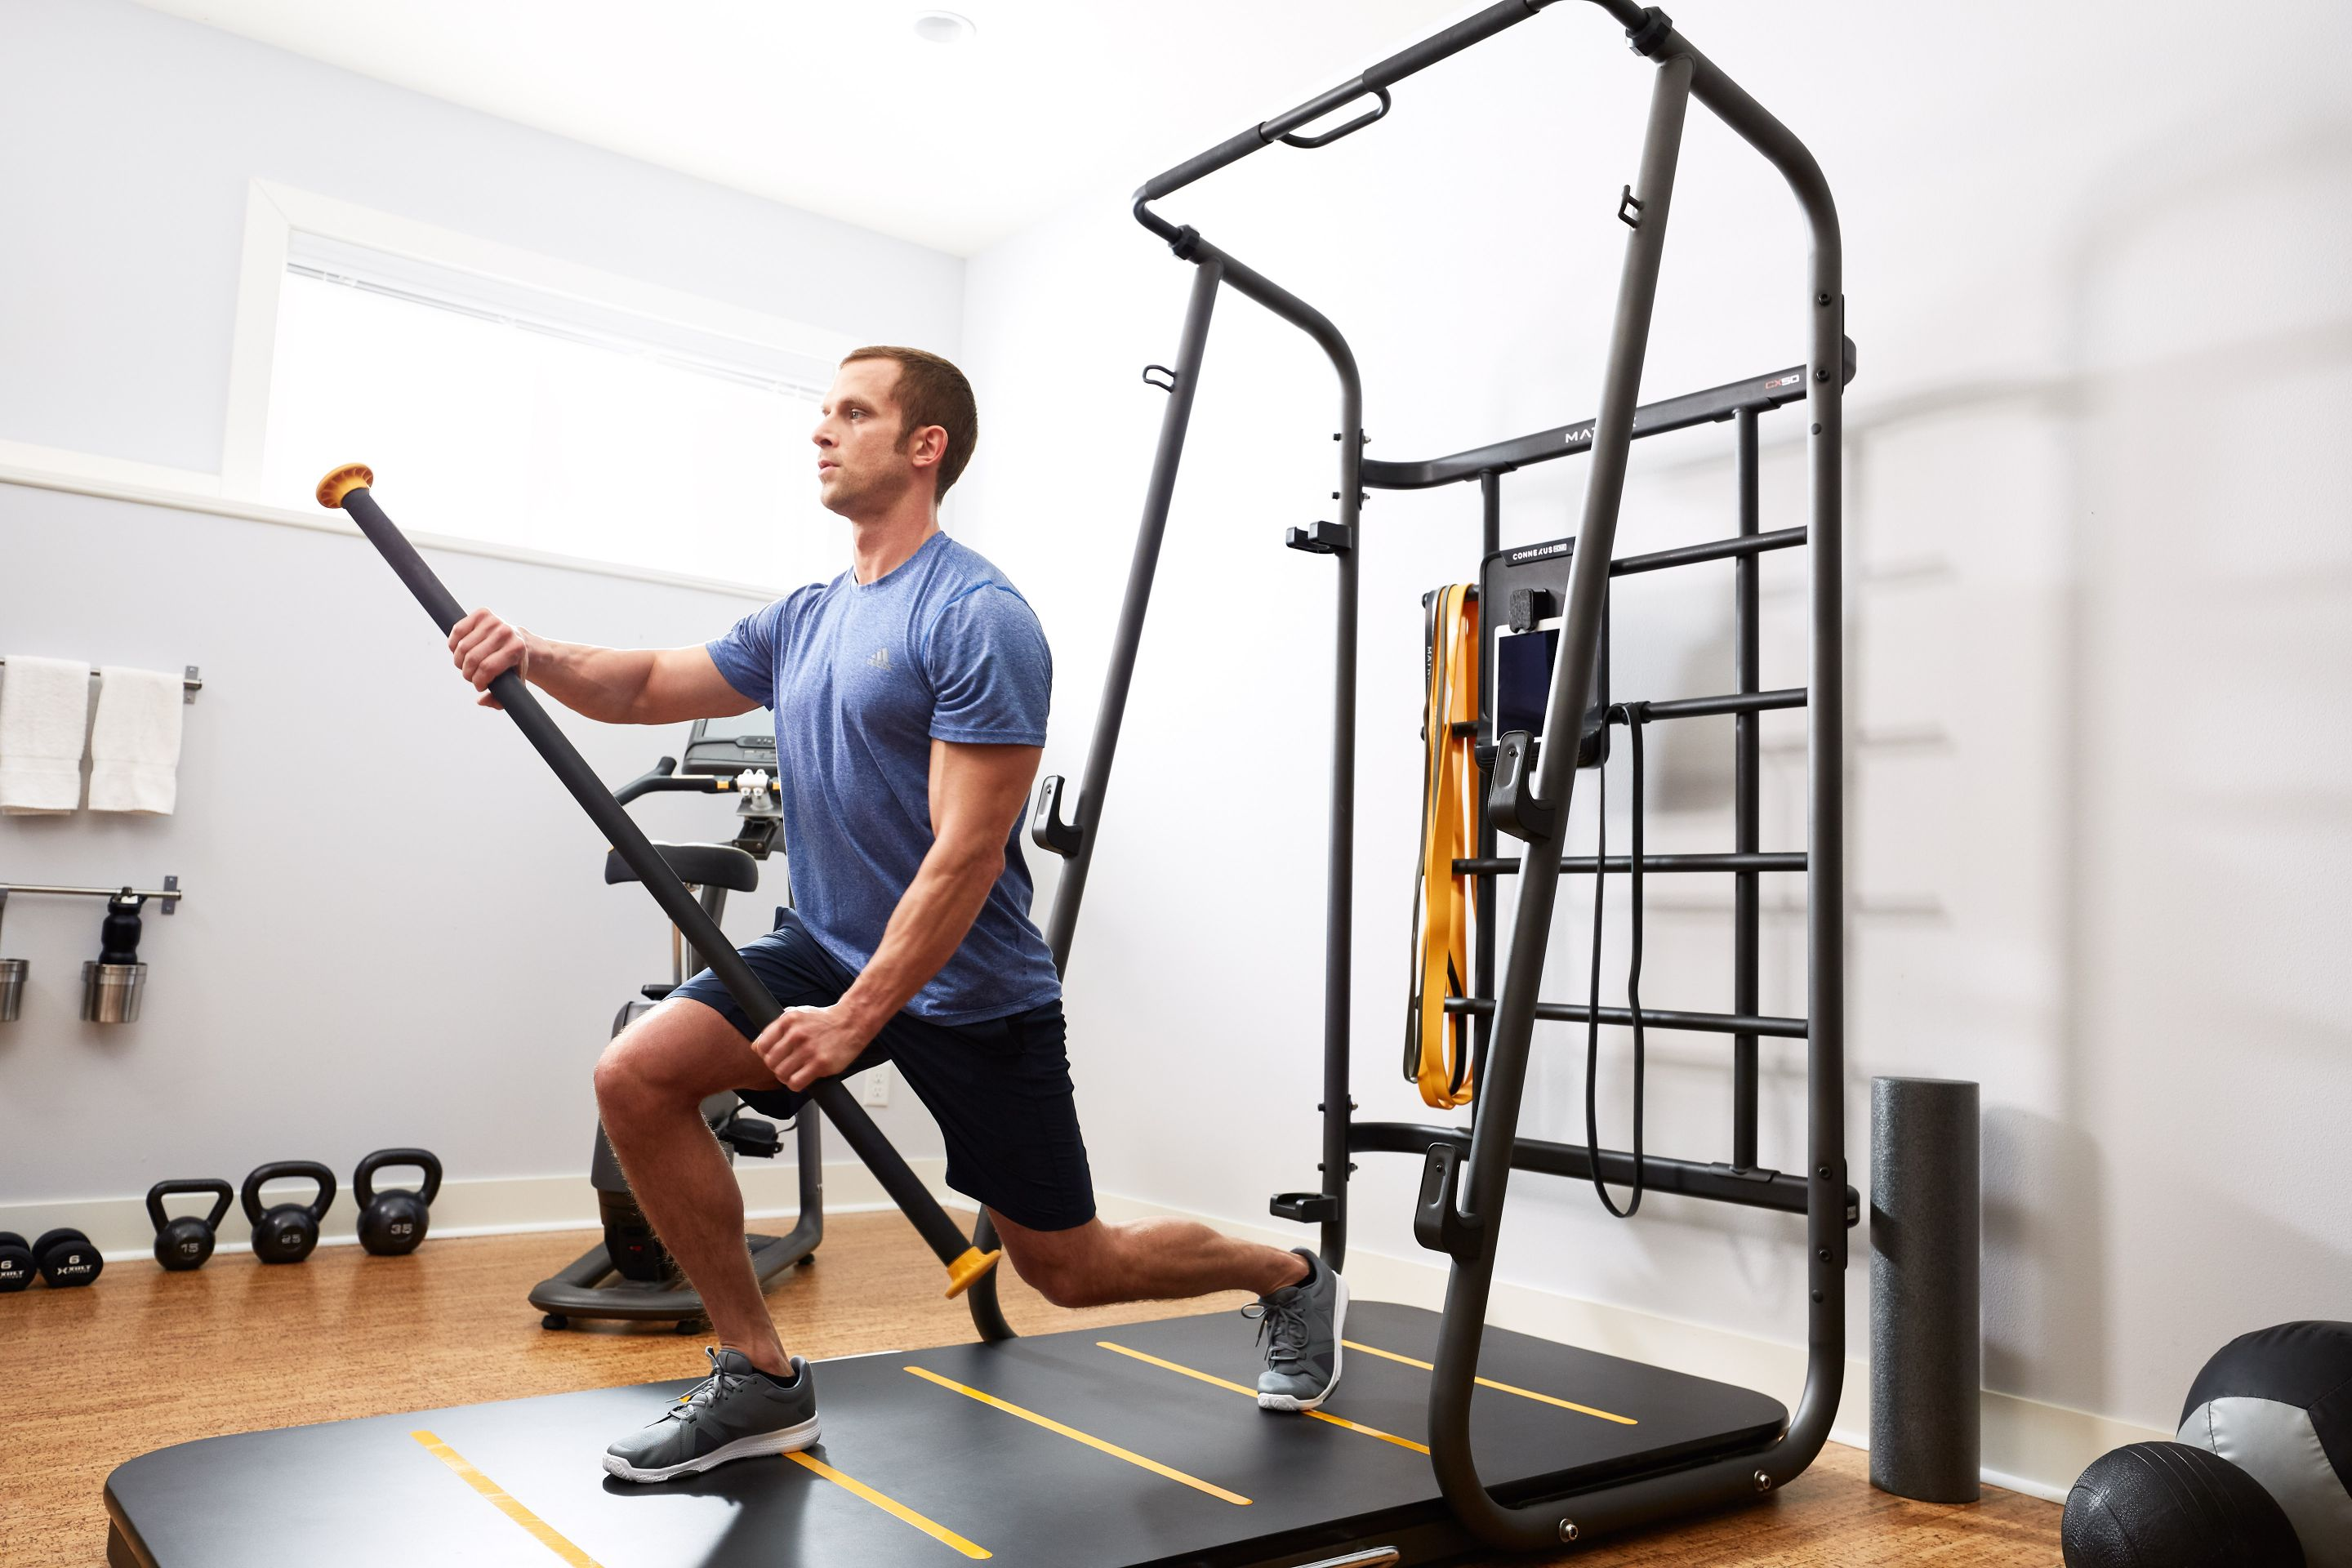 Home Gym Equipments Are Really Selling Fast in the UAE